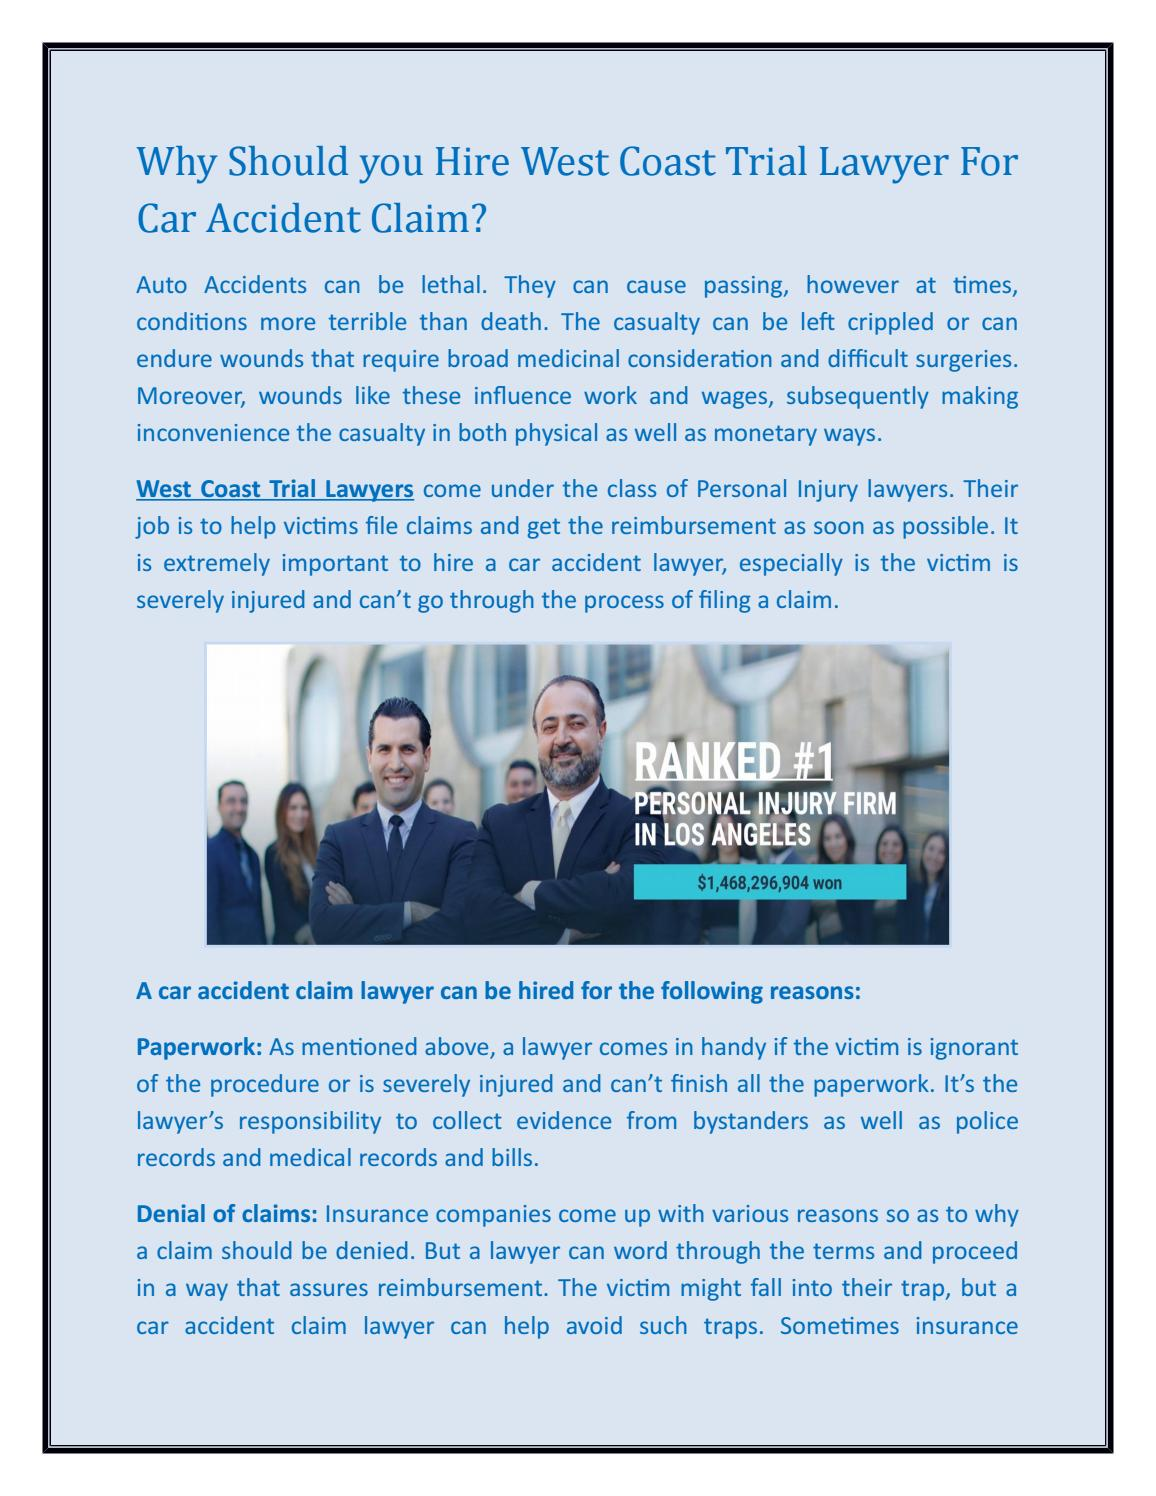 Why Should you Hire West Coast Trial Lawyer For Car Accident Claim?